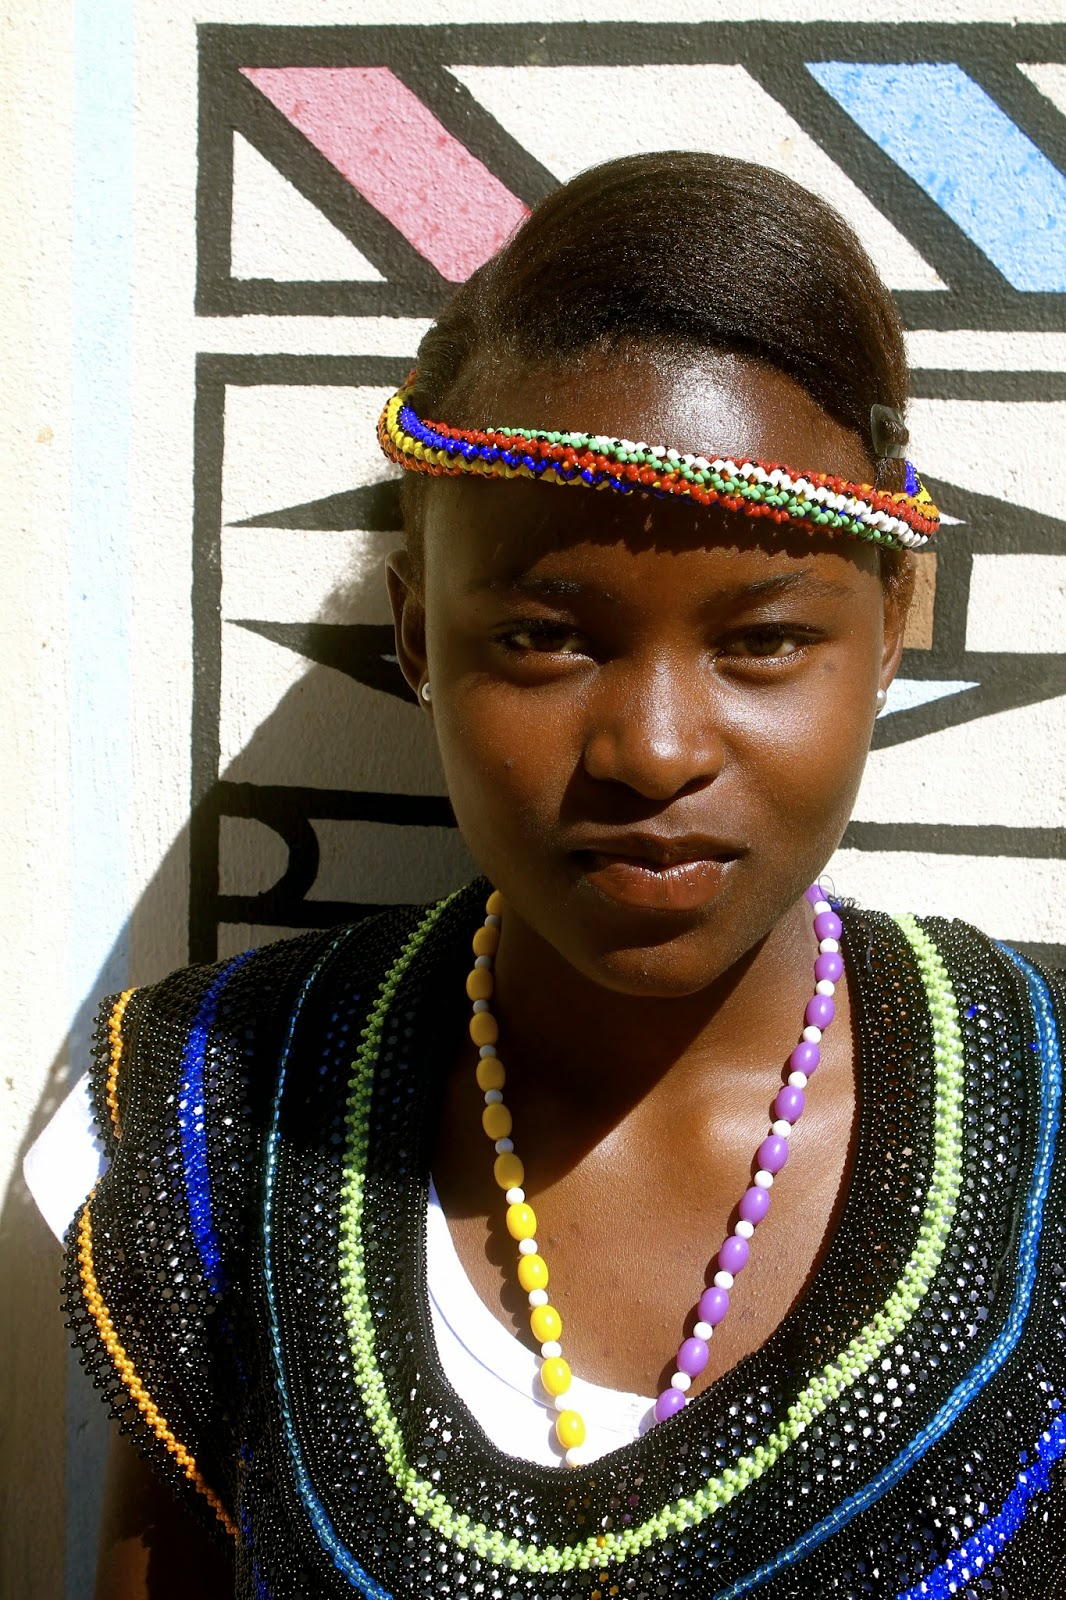 This is one of my grade eight learners, Maria. We went on field trip with the school choir to the Ndebele king's wedding. The choir waited around for hours to sing, but never got the chance. Instead, a few of my girls, Maria included, turned the experience into a photo shoot.